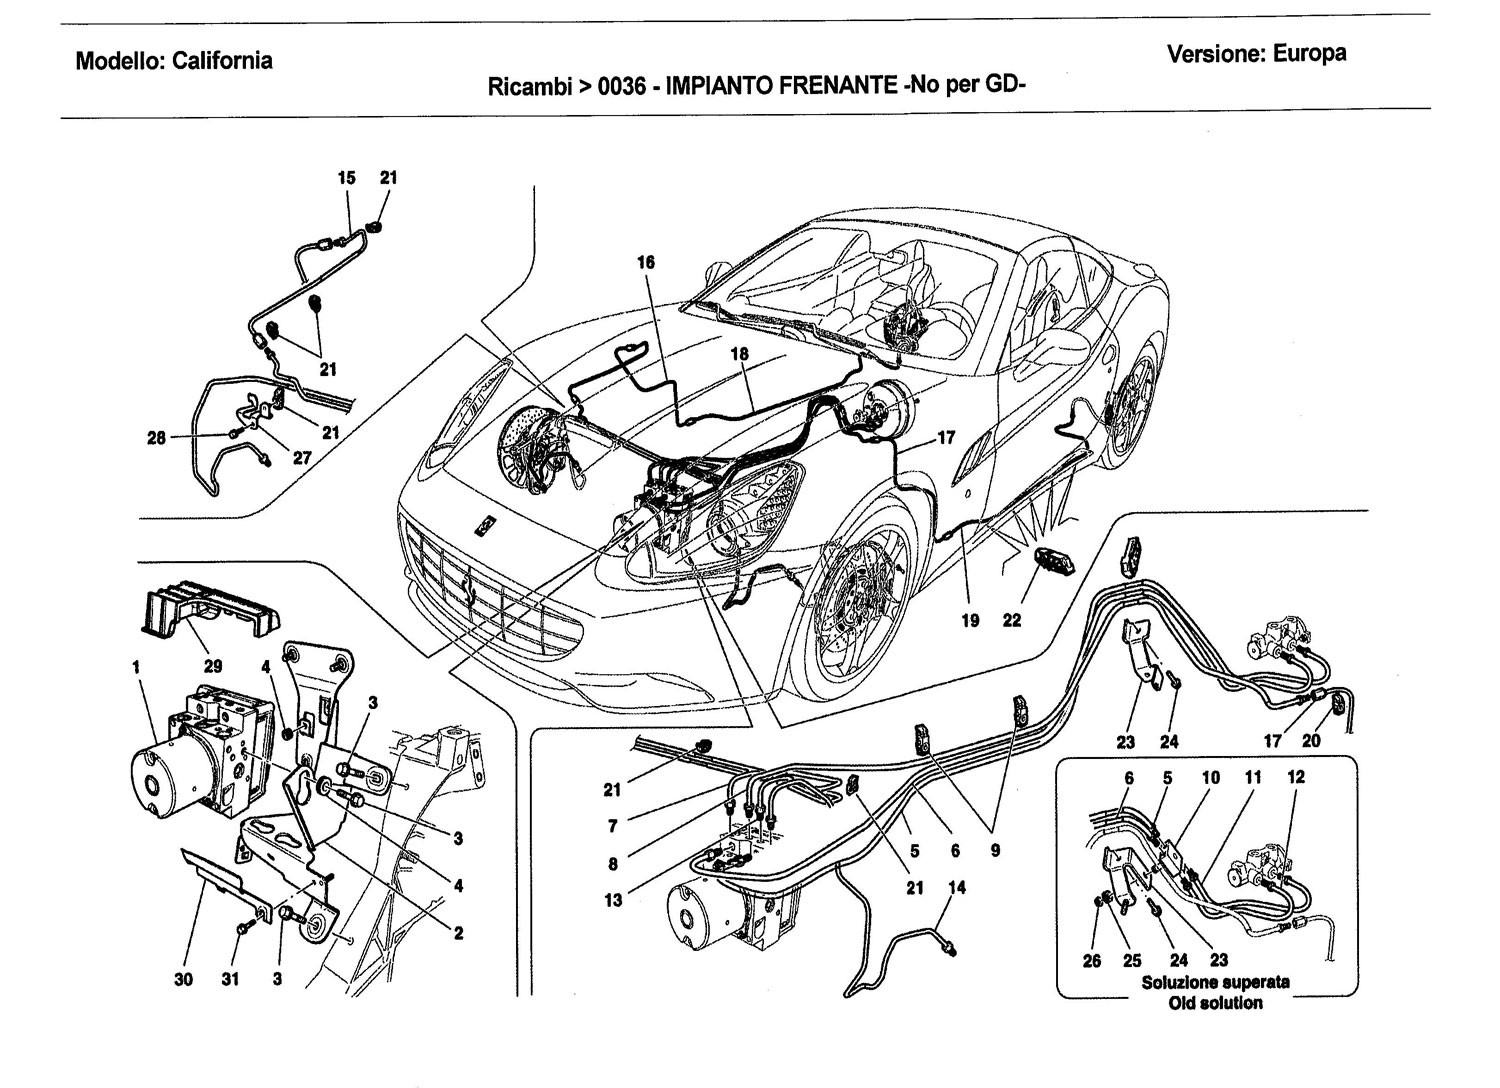 BRAKE SYSTEM -Not applicable for GD-